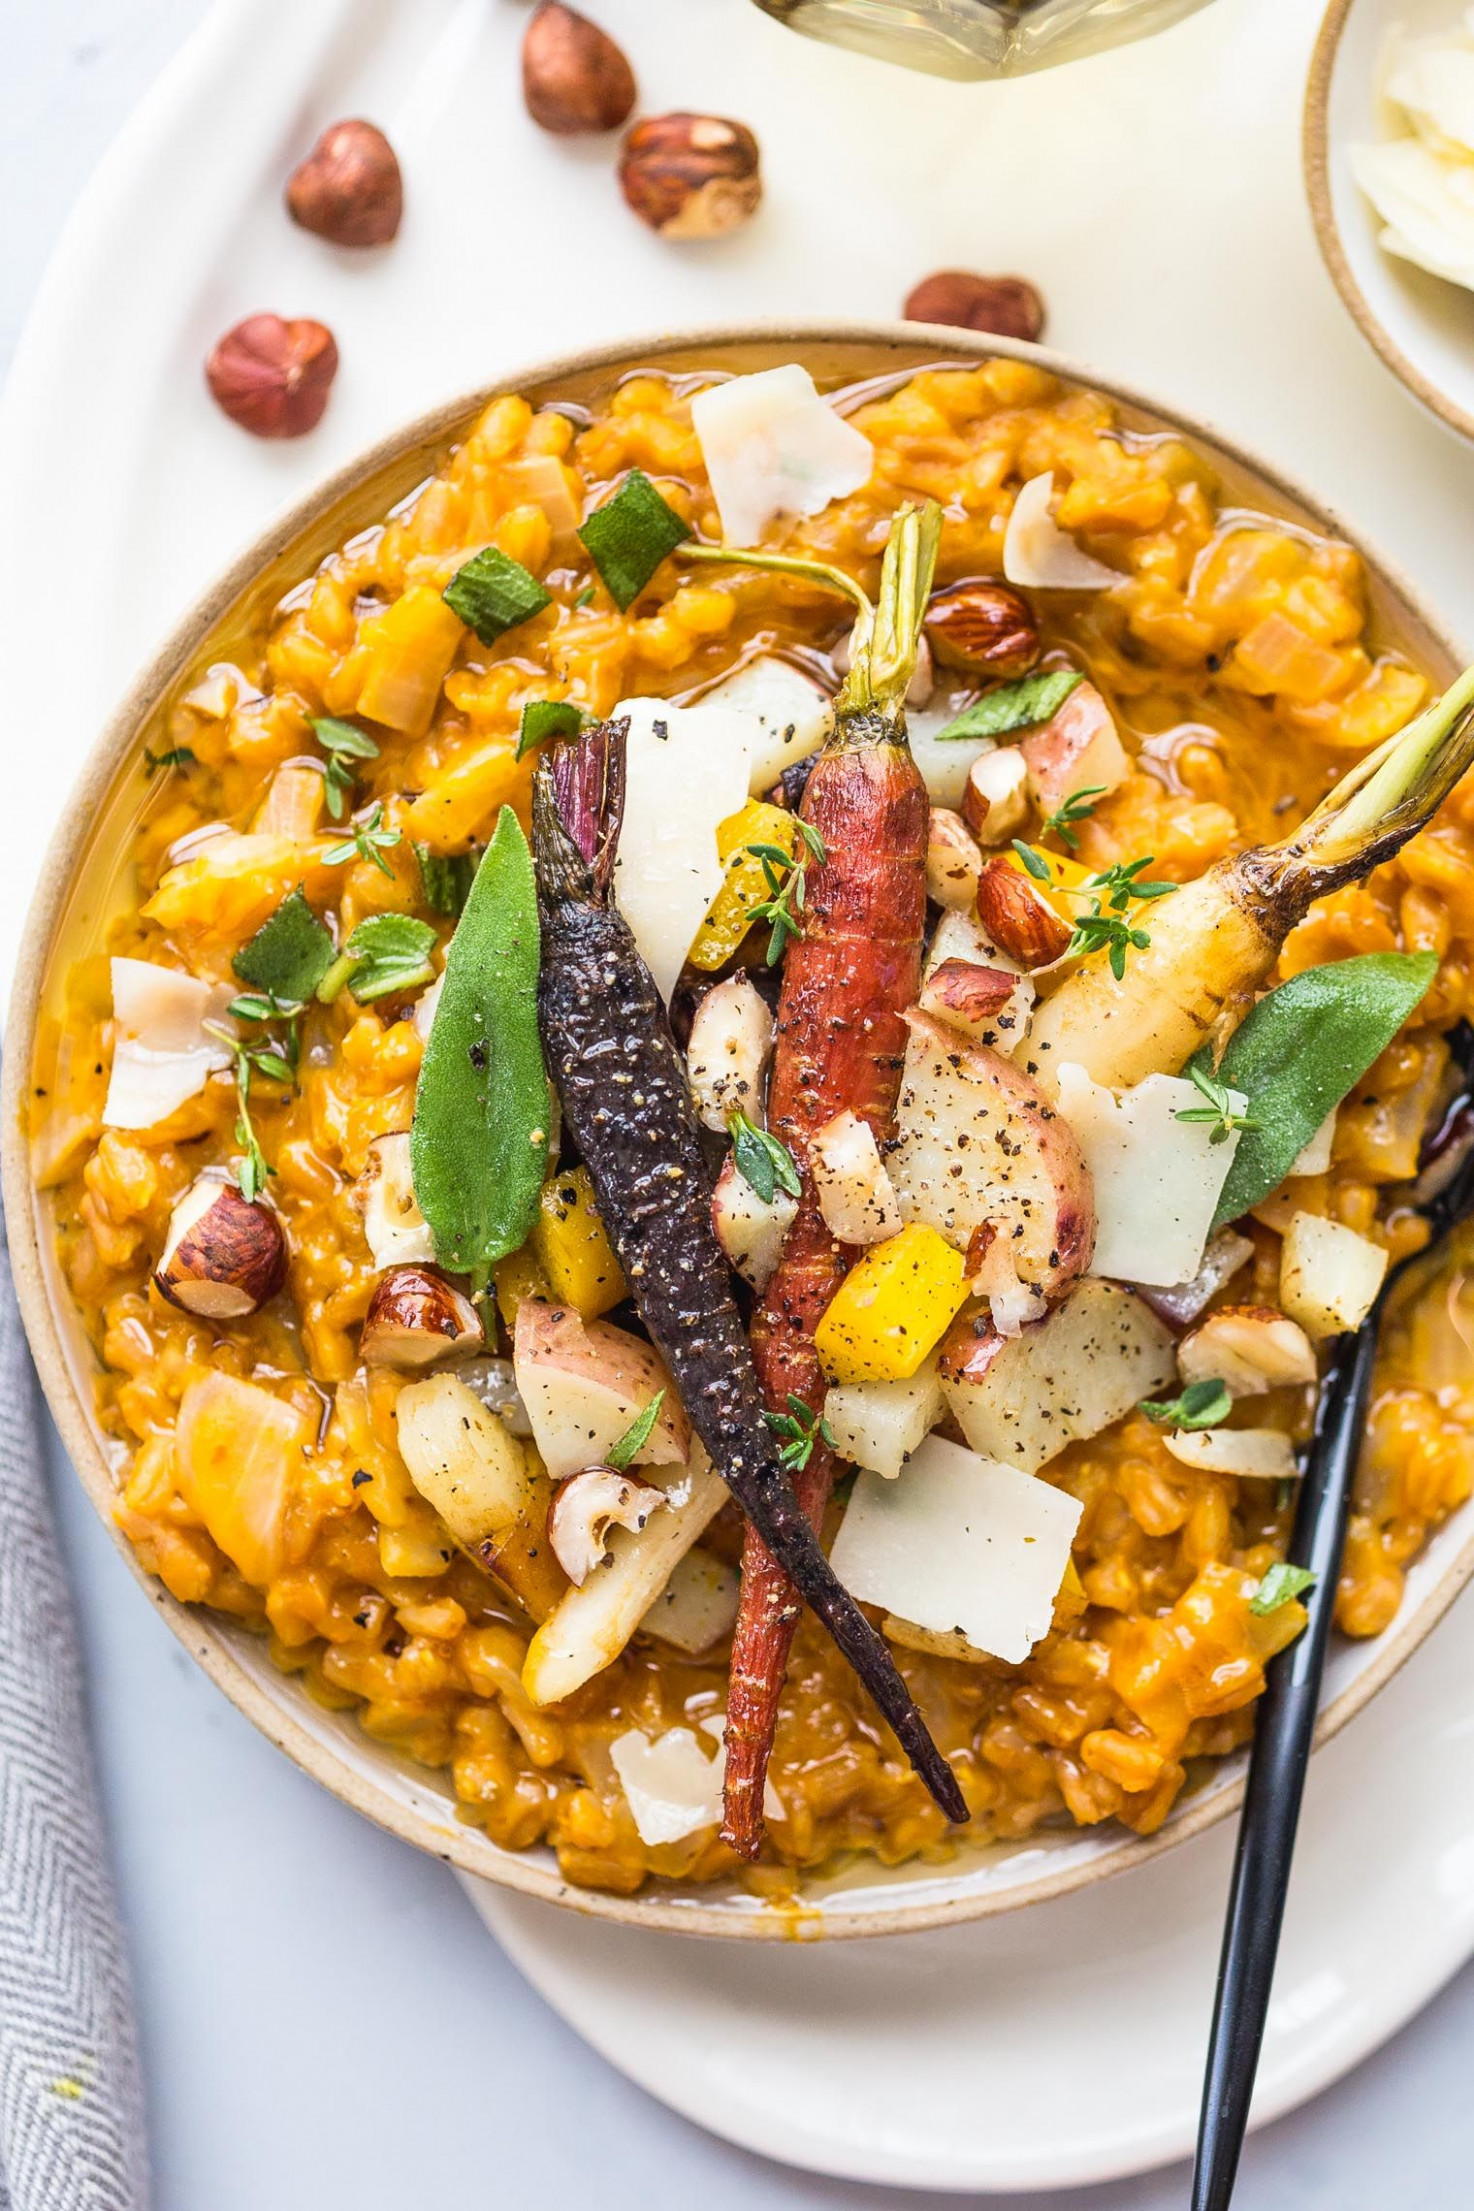 Pumpkin Farro Risotto with Roasted Winter Vegetables - winter recipes vegetarian